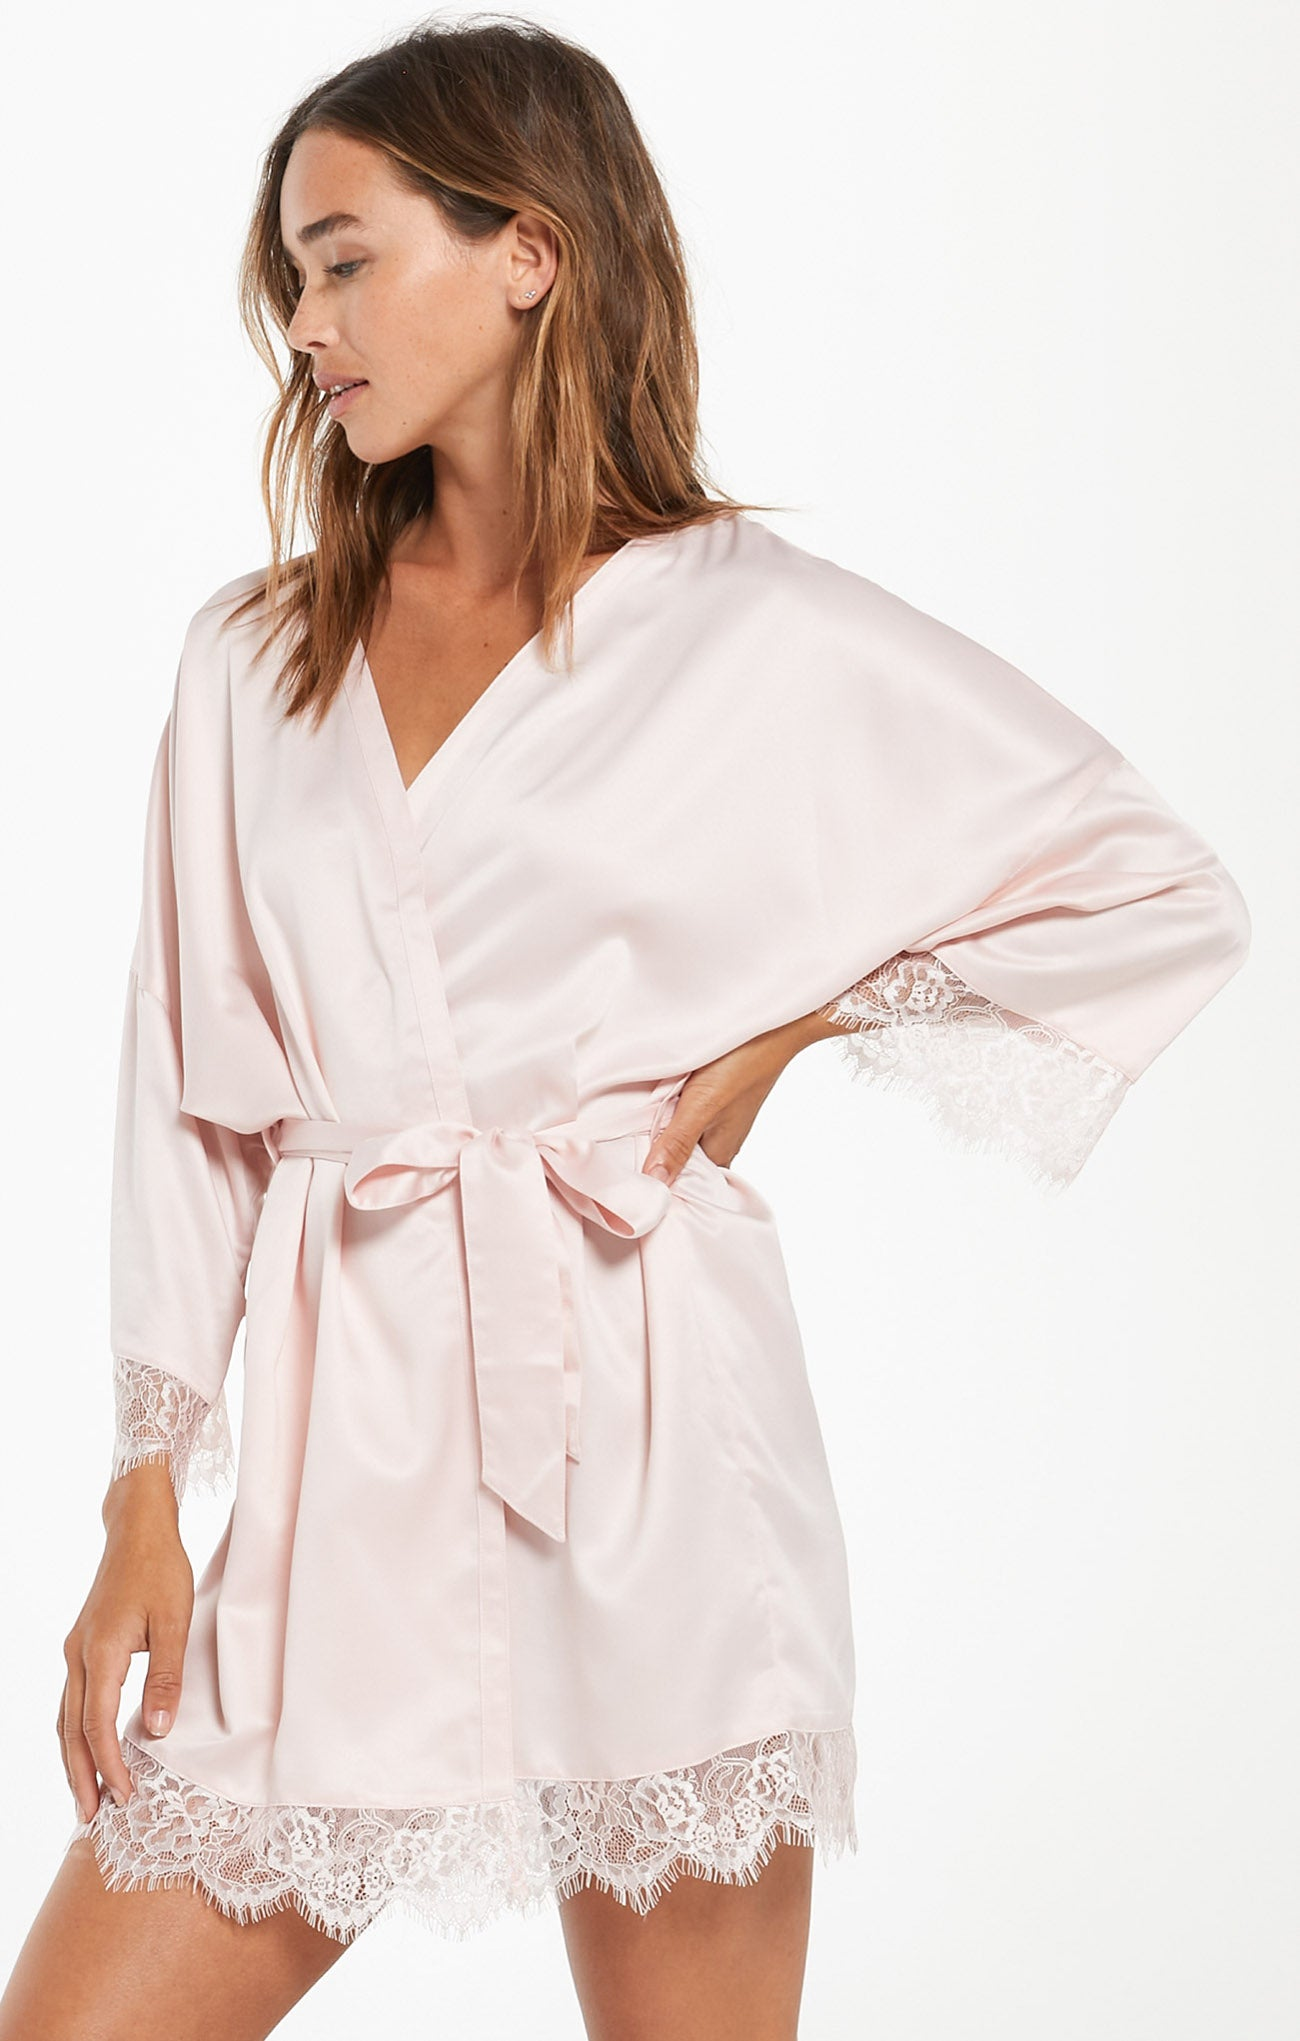 Jackets Best Day Ever Robe Best Day Ever Robe